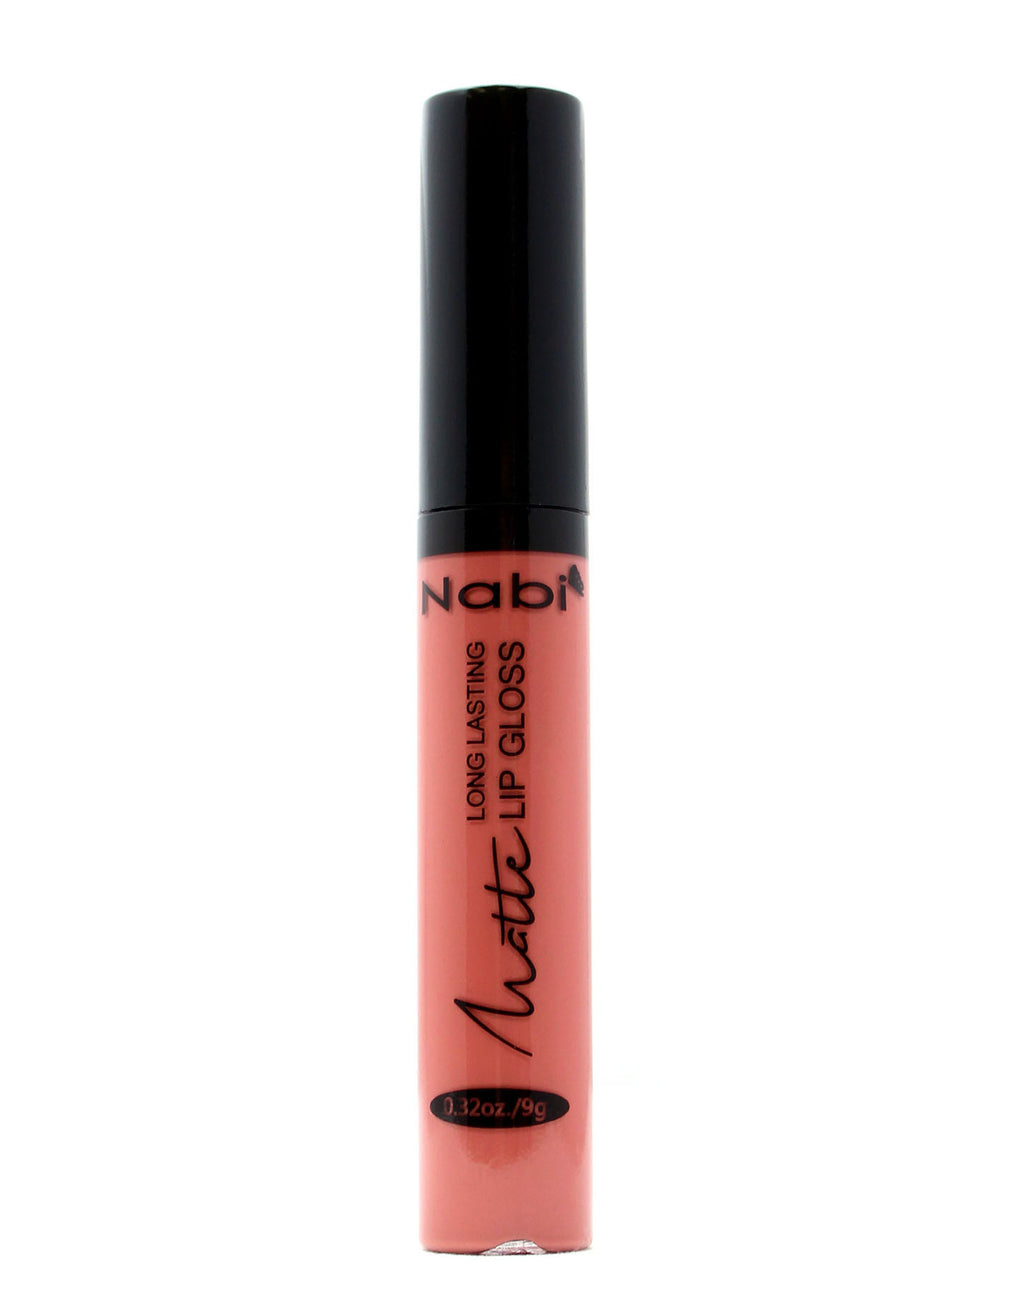 MLG14 - Long Lasting Matte Lip Gloss Honey